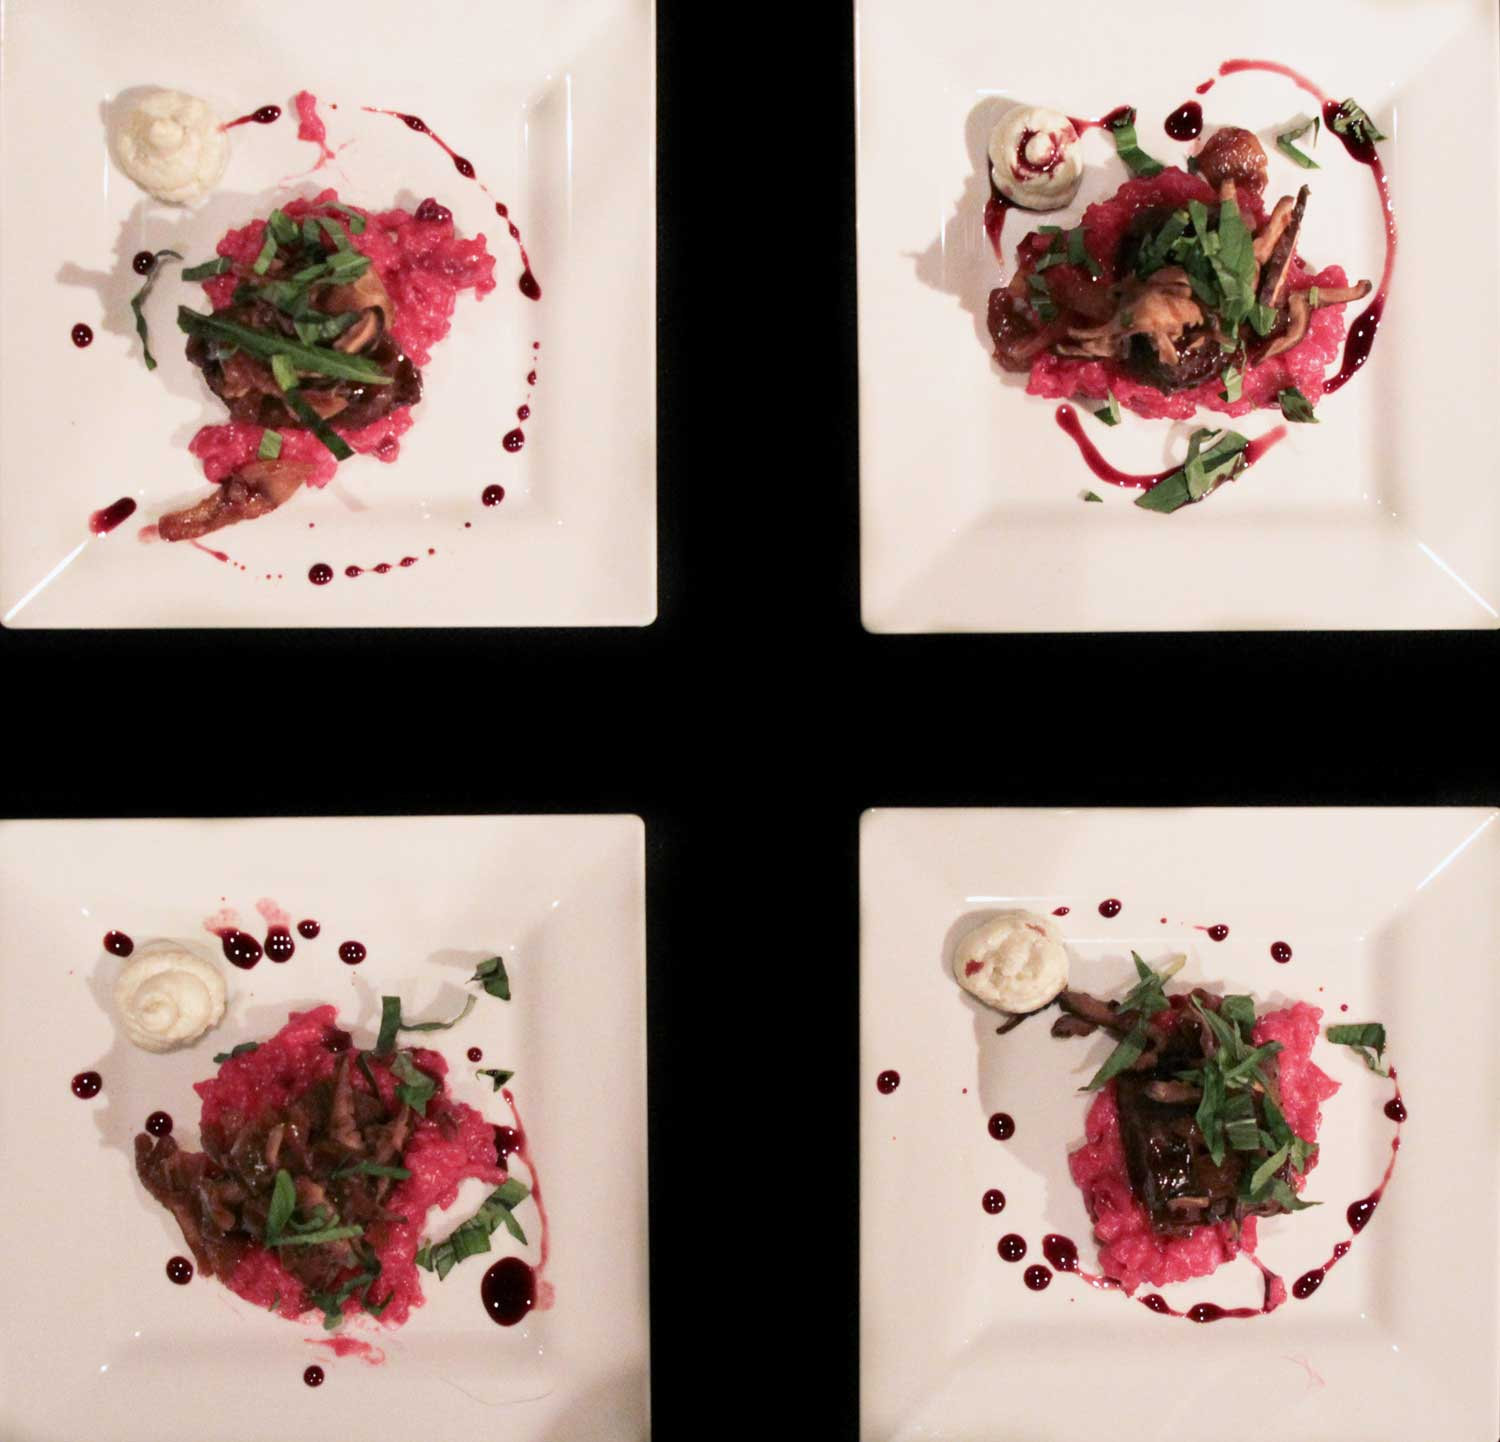 Mongolian Glazed Braised Shortribs…roasted red beet risotto, caramelized onions and shiitakes with whipped gorgonzola prepared by Cafe Fresco